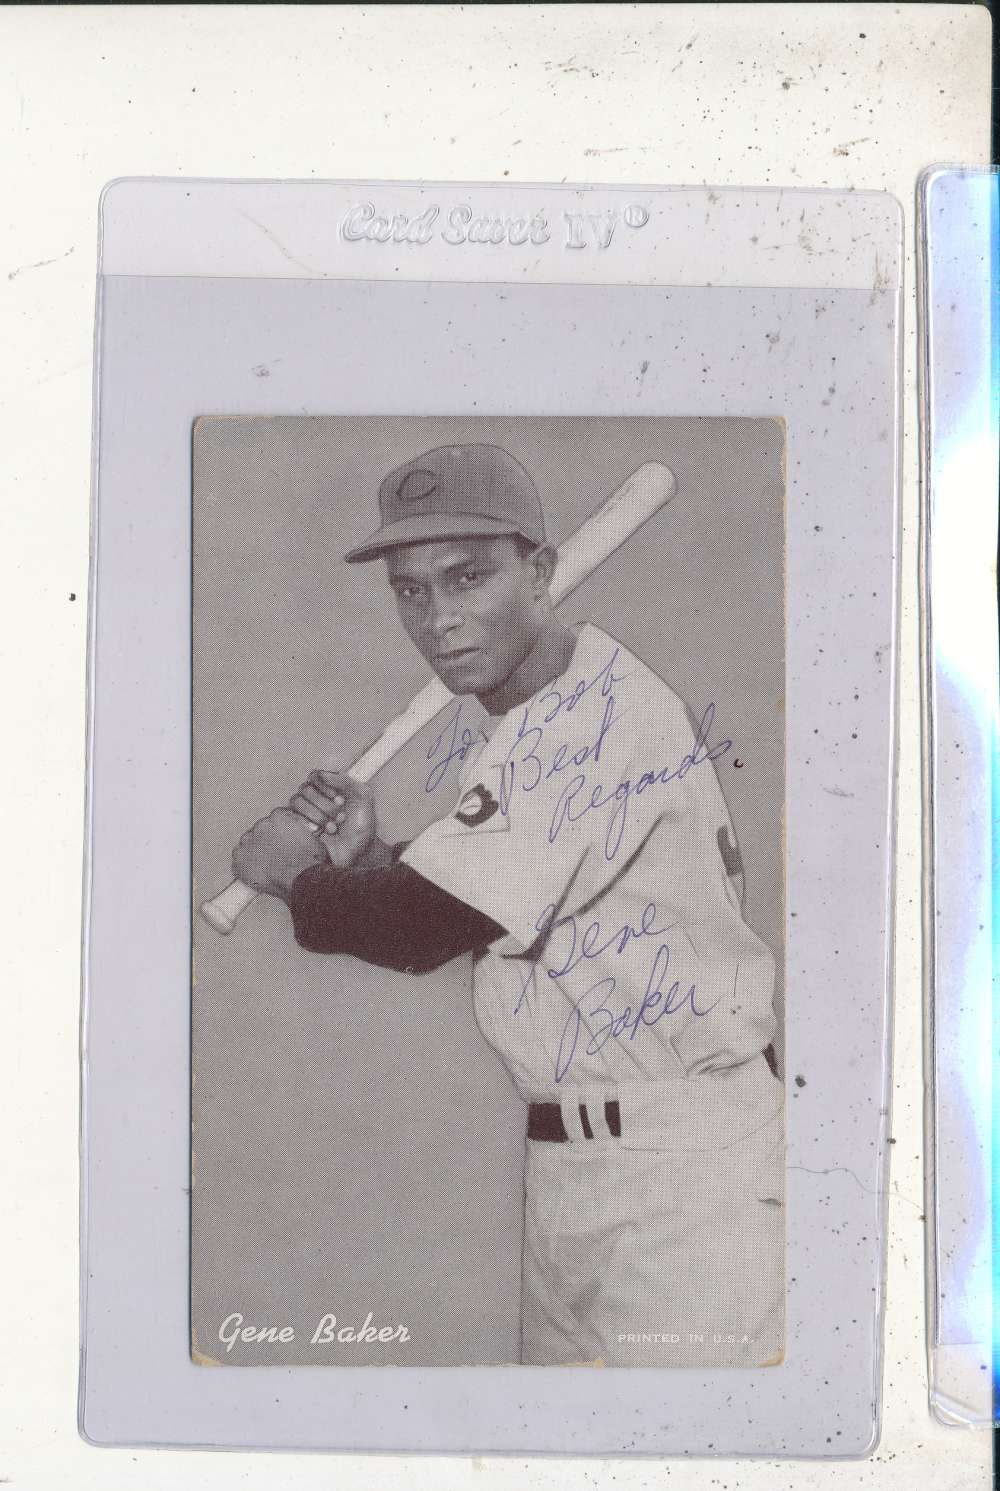 Gene Baker Reds Signed 1946-1966 exhibit card personalized